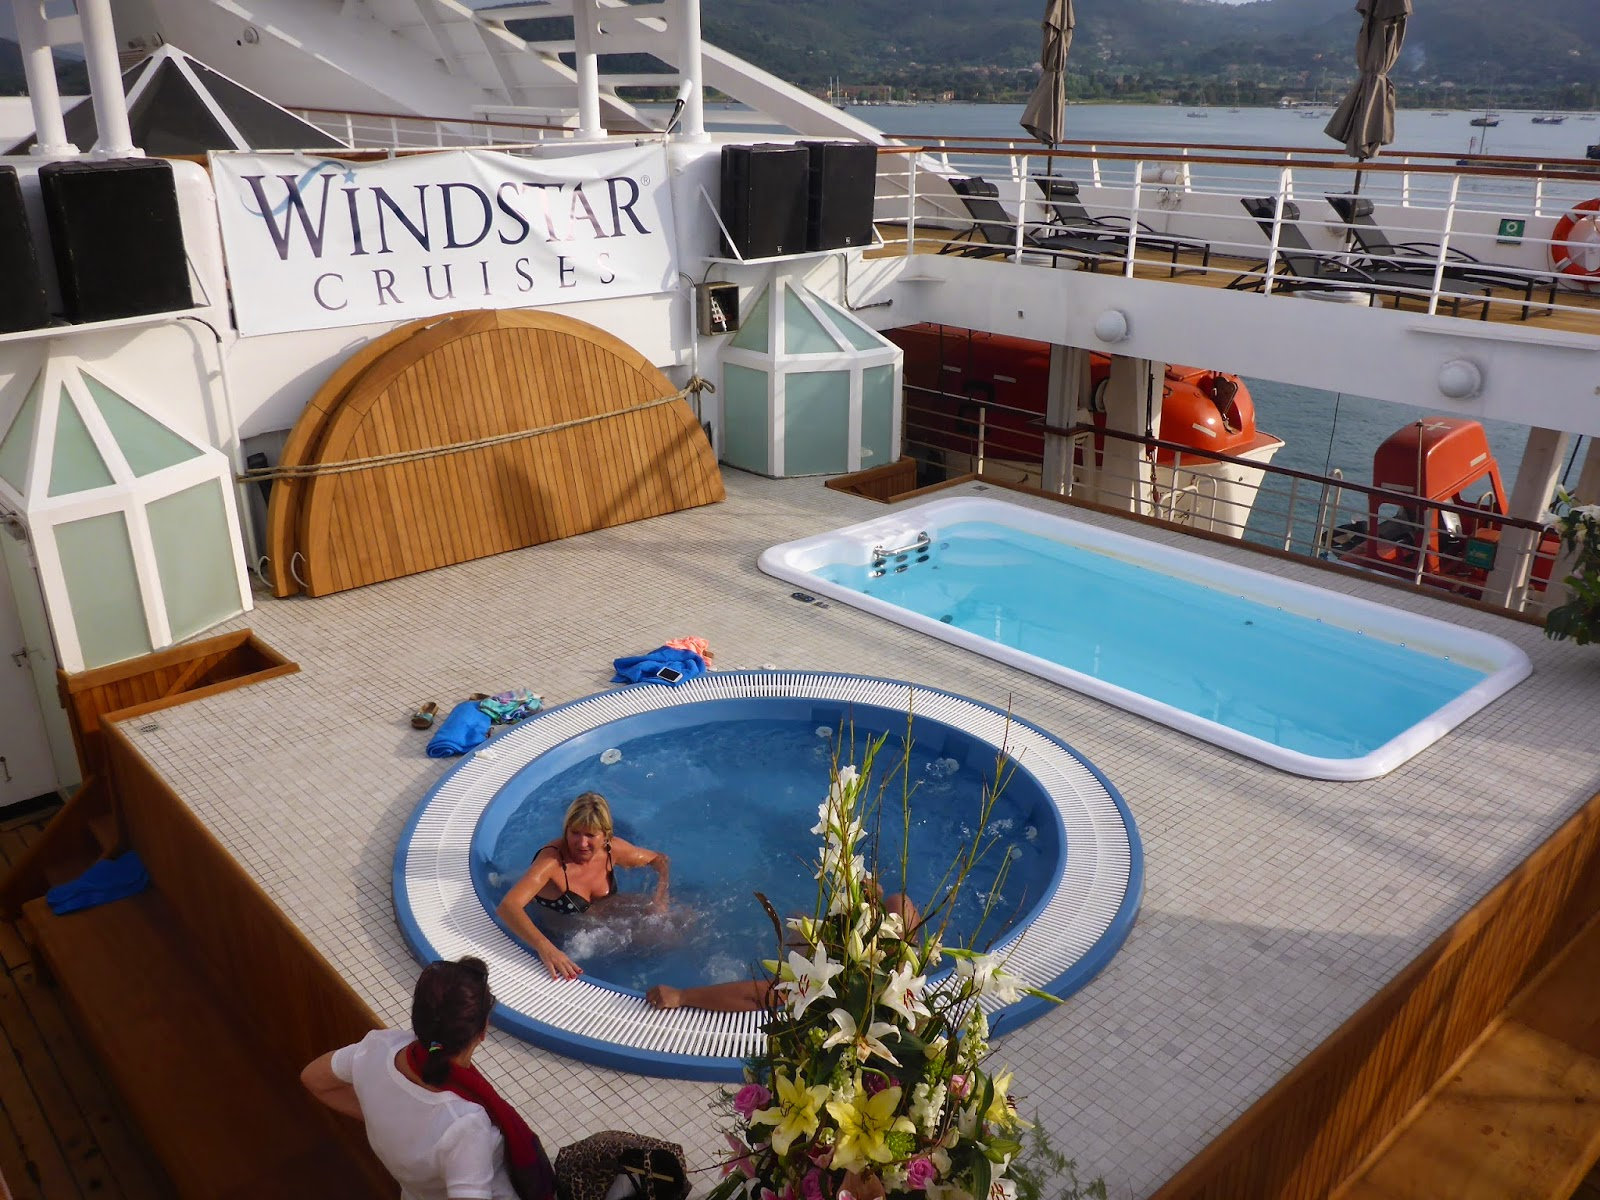 Windstar Cruises 39 Star Breeze Inaugural Cruise Part Ii The Transformation Of A Cruise Line